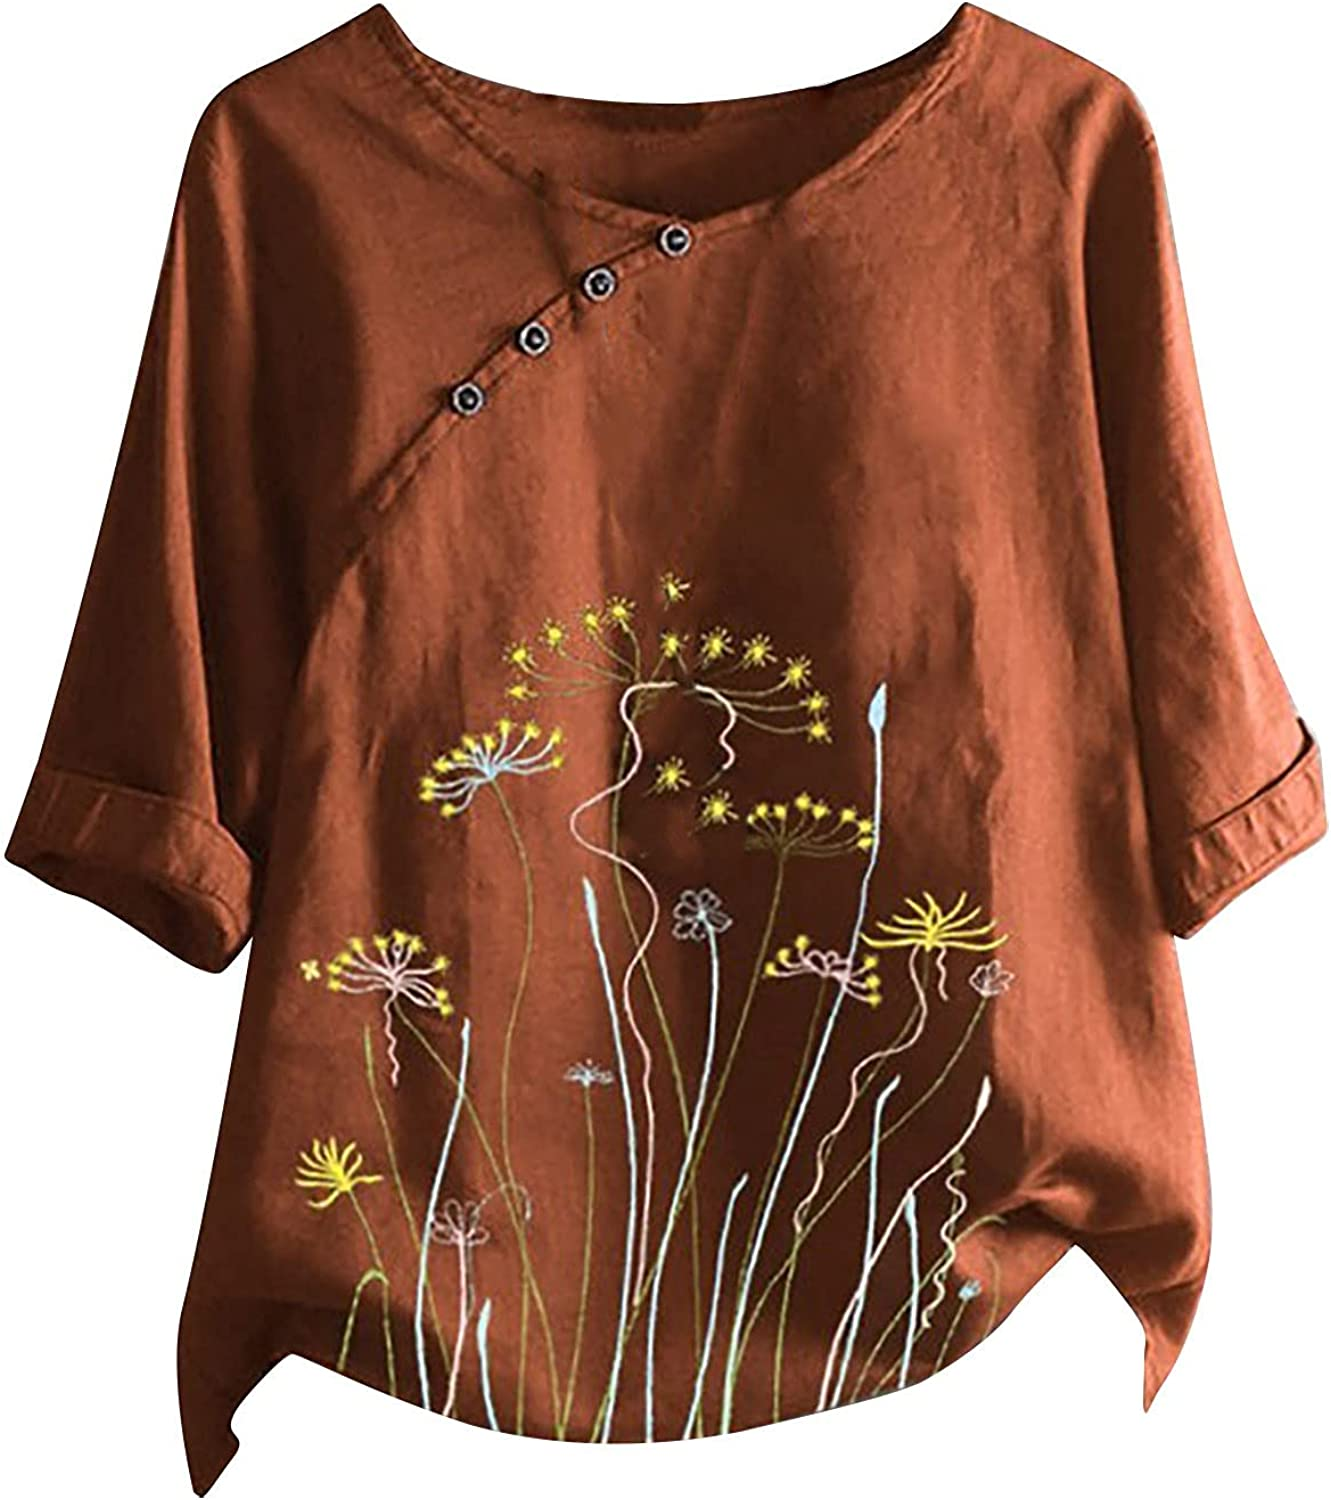 Women's T-Shirt Round O-Neck Short Sleeve Casual Tops Summer Blouse for Women Printed Tunic …